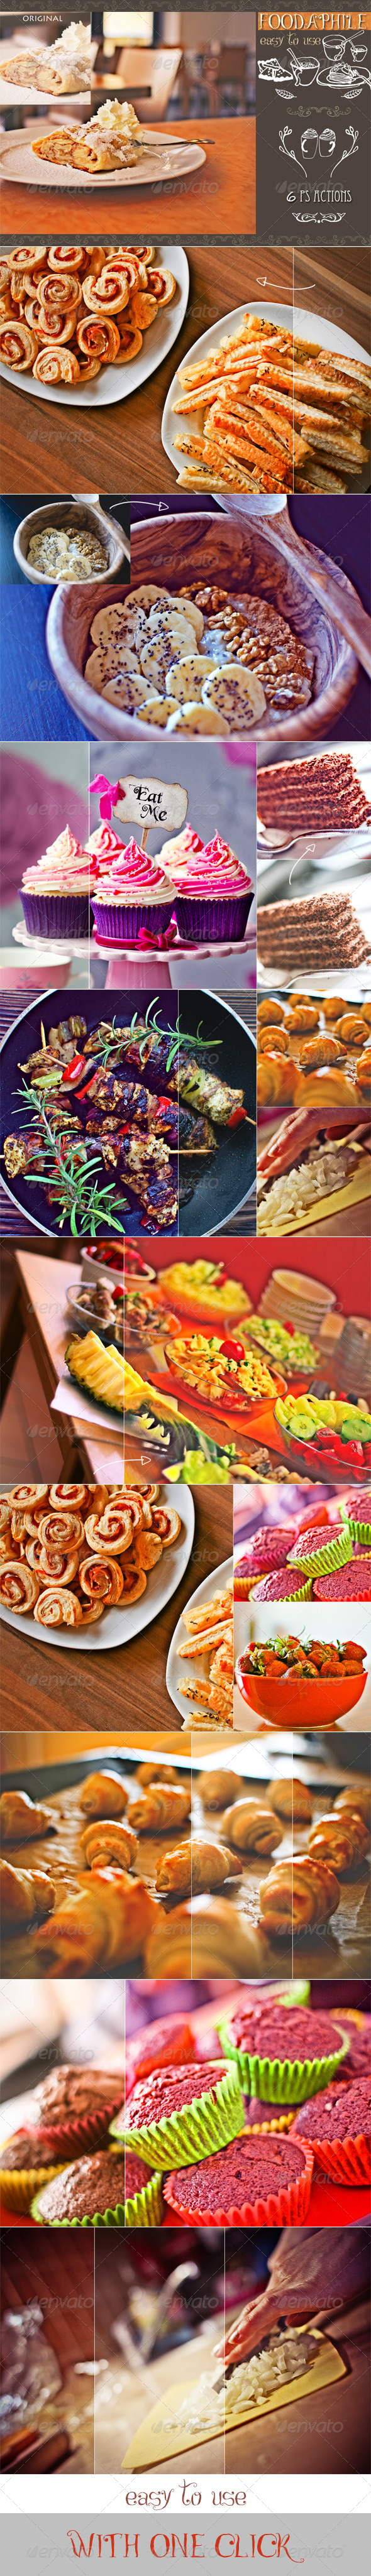 GraphicRiver Foodaphile 6 PS Actions 8108880